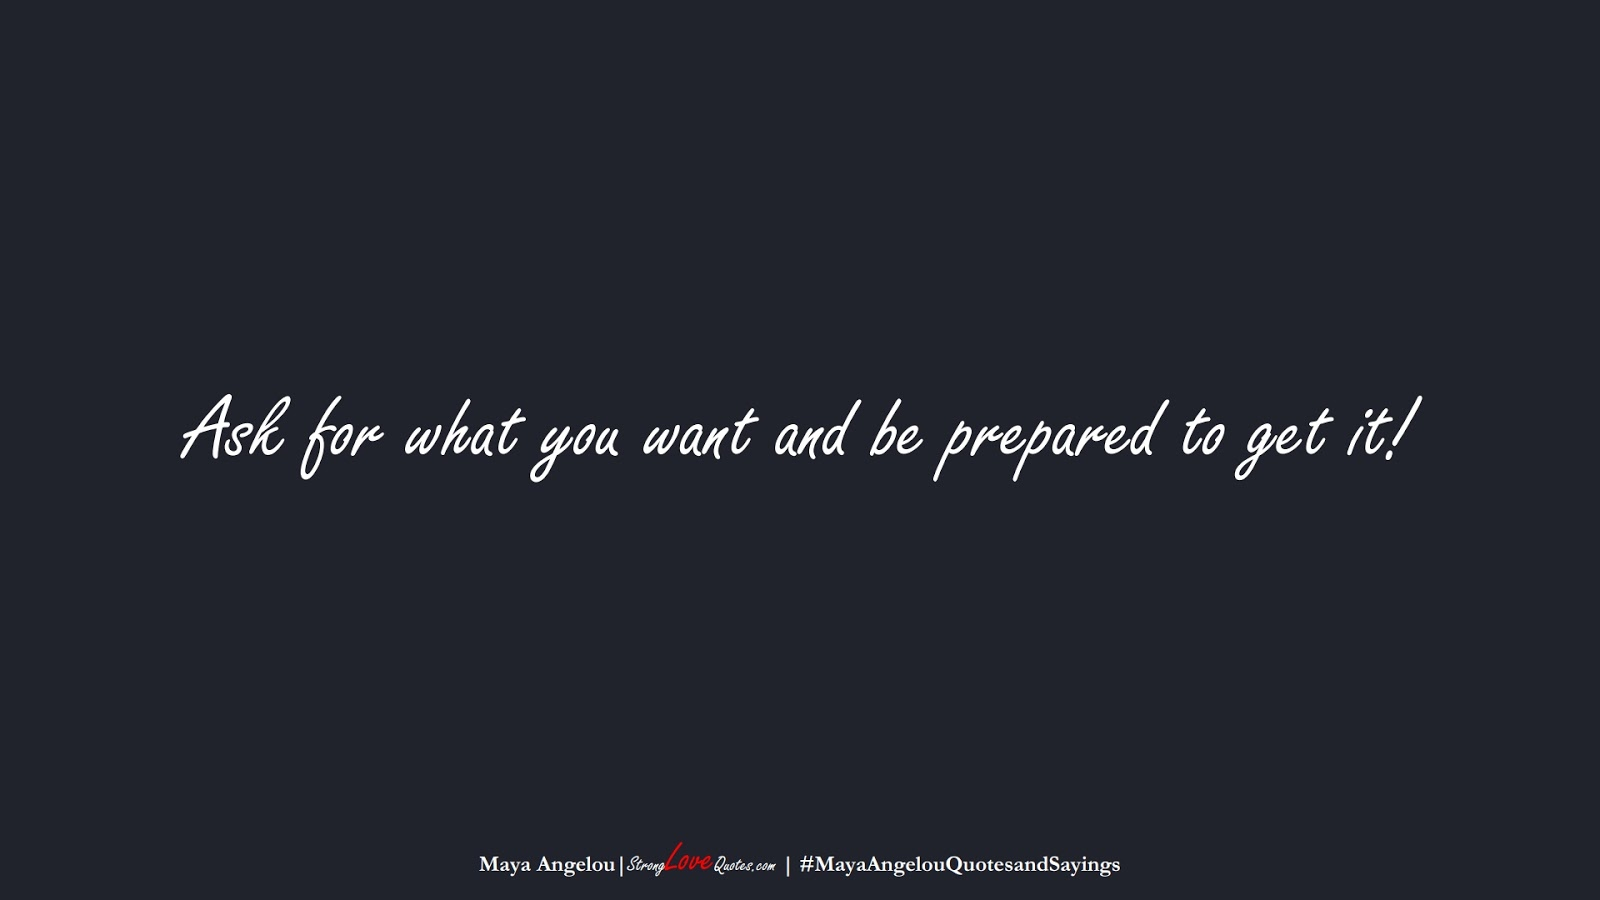 Ask for what you want and be prepared to get it! (Maya Angelou);  #MayaAngelouQuotesandSayings